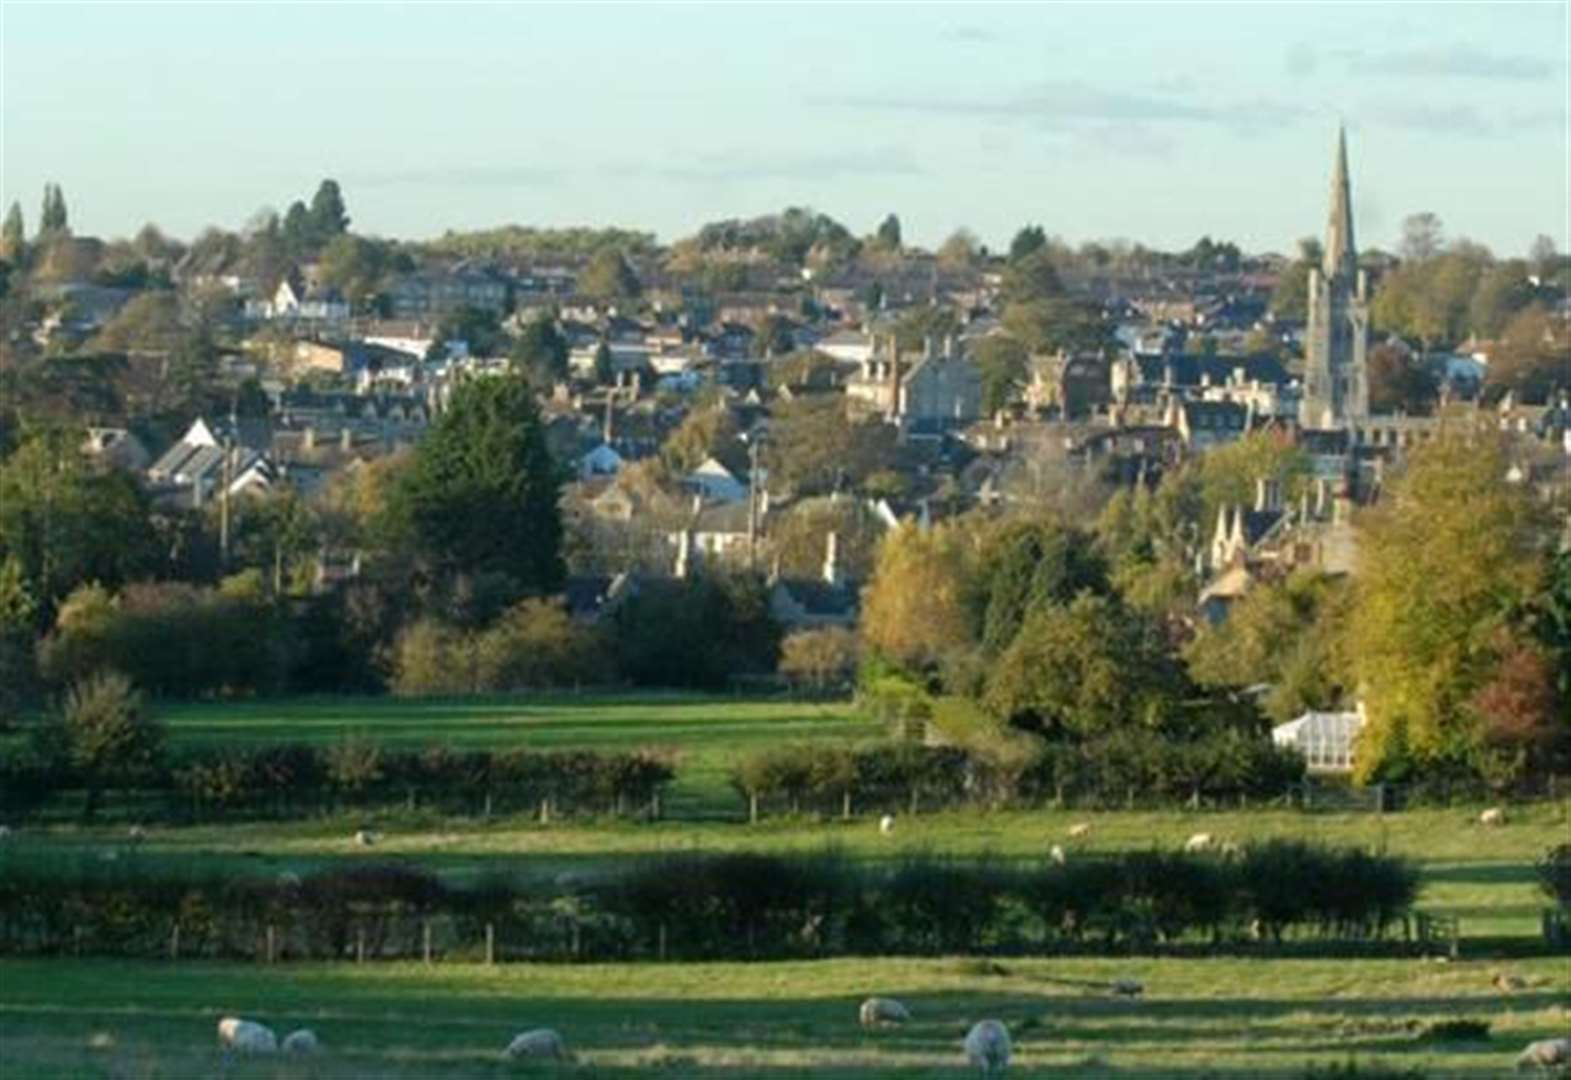 Homes plan would 'ruin iconic town view'